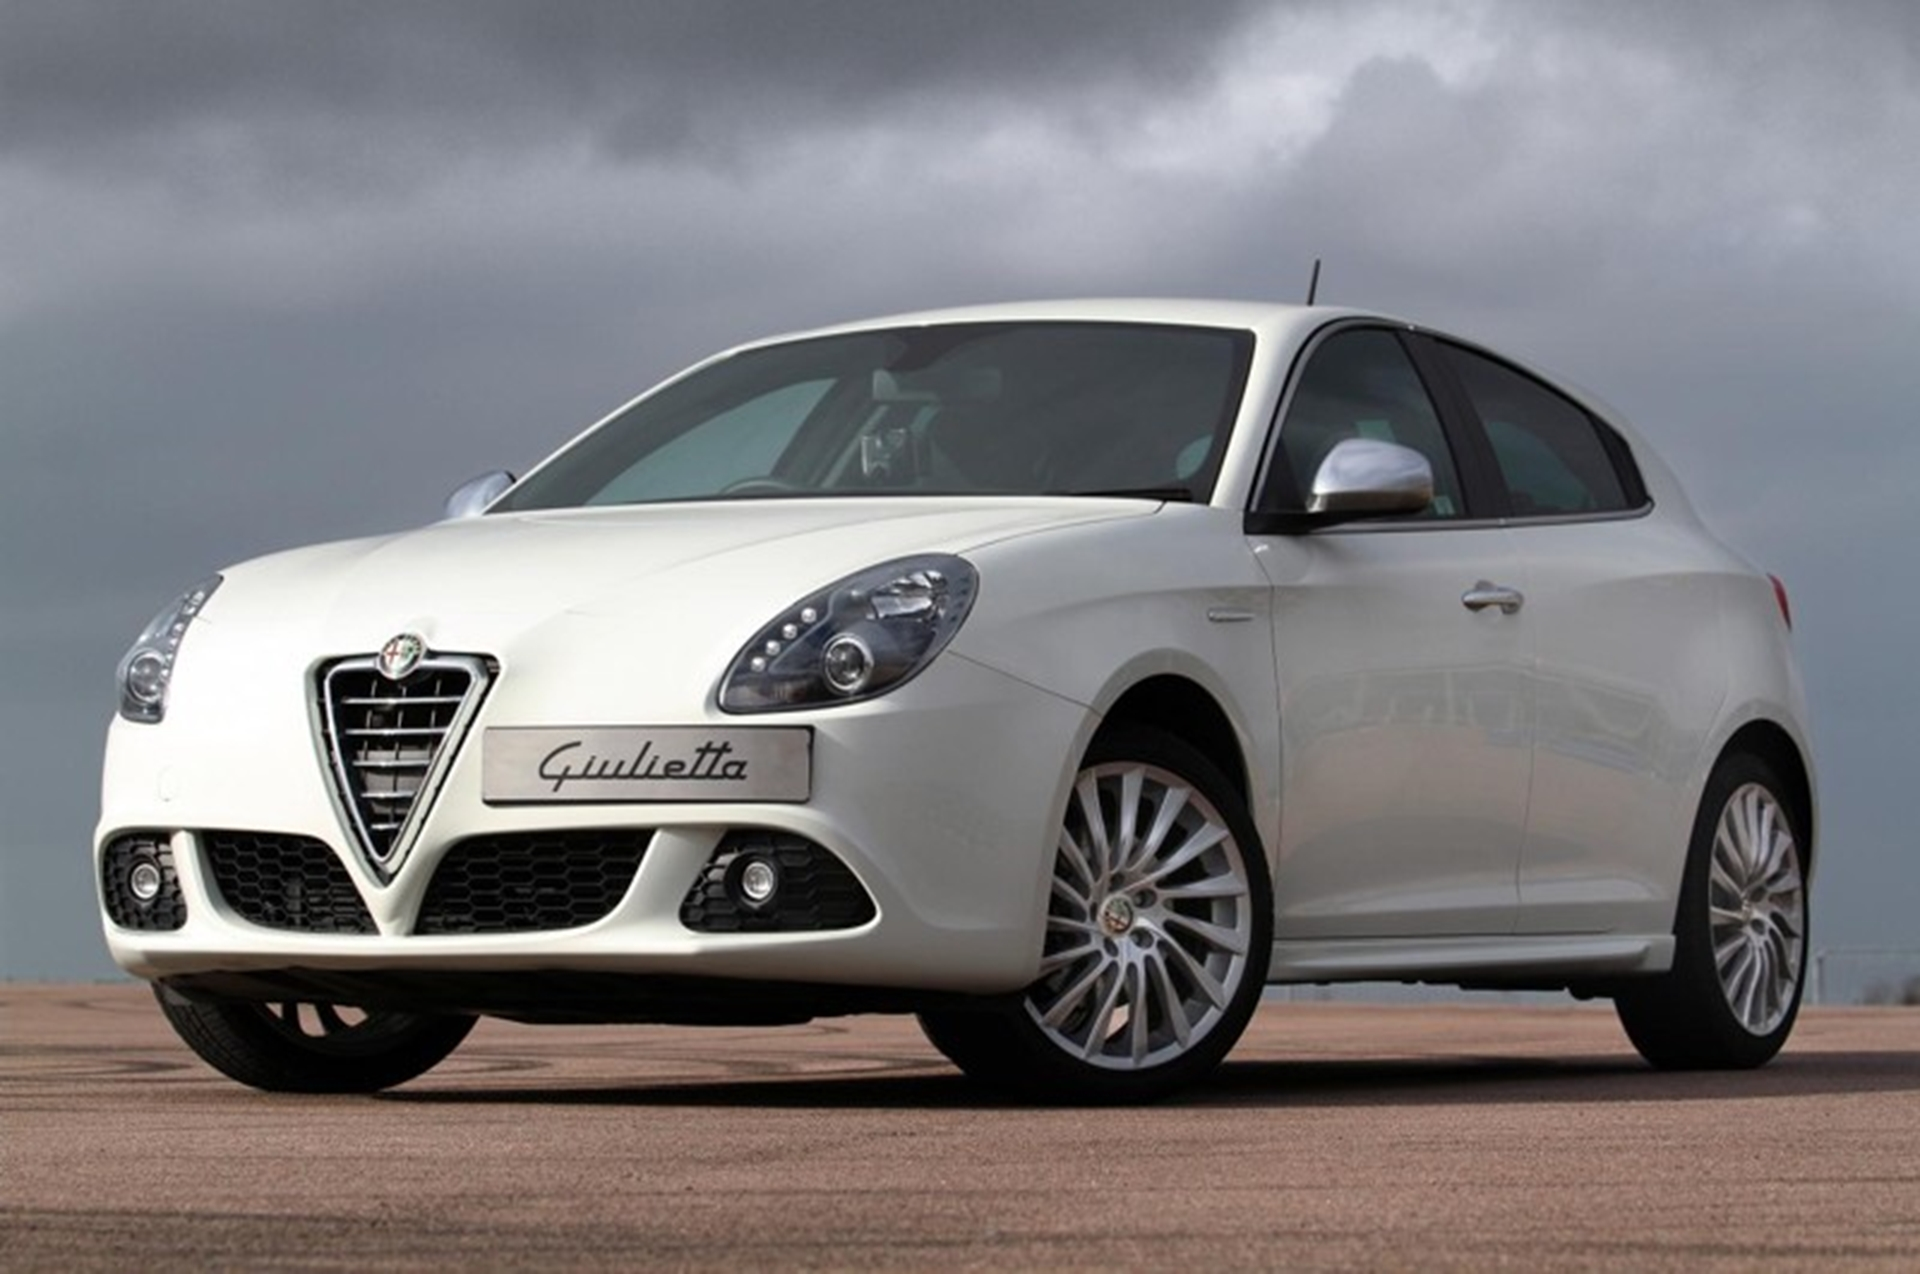 Alfa Giulietta 299 reasons